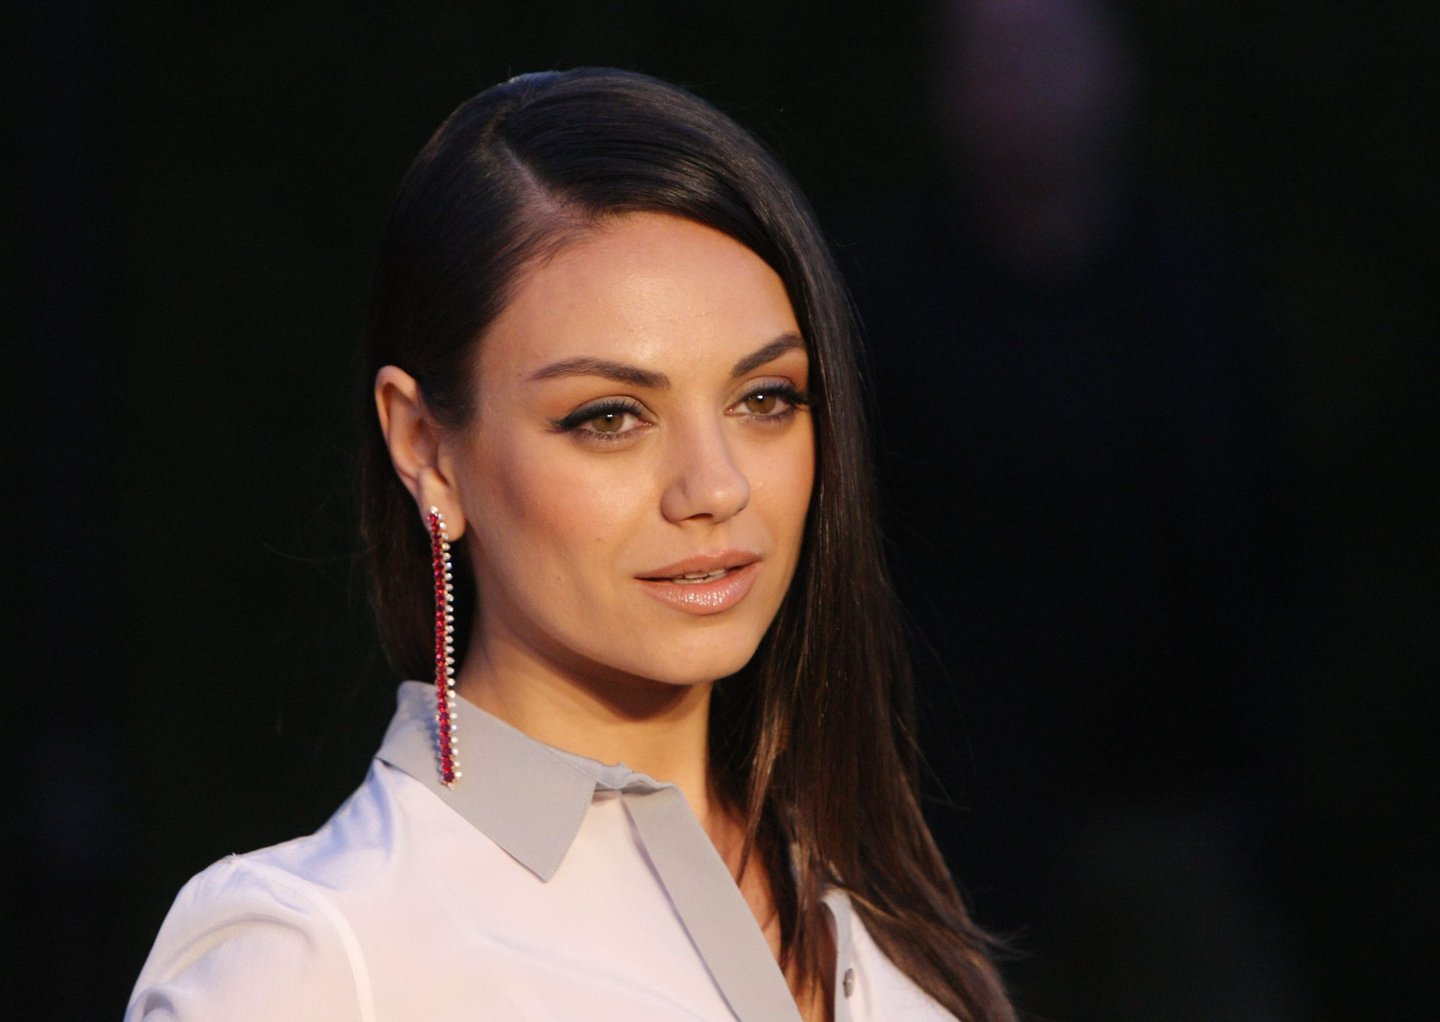 """LOS ANGELES, CA - APRIL 16: Actress Mila Kunis attends the Burberry """"London in Los Angeles"""" event at Griffith Observatory on April 16, 2015 in Los Angeles, California. (Photo by David Buchan/Getty Images)"""